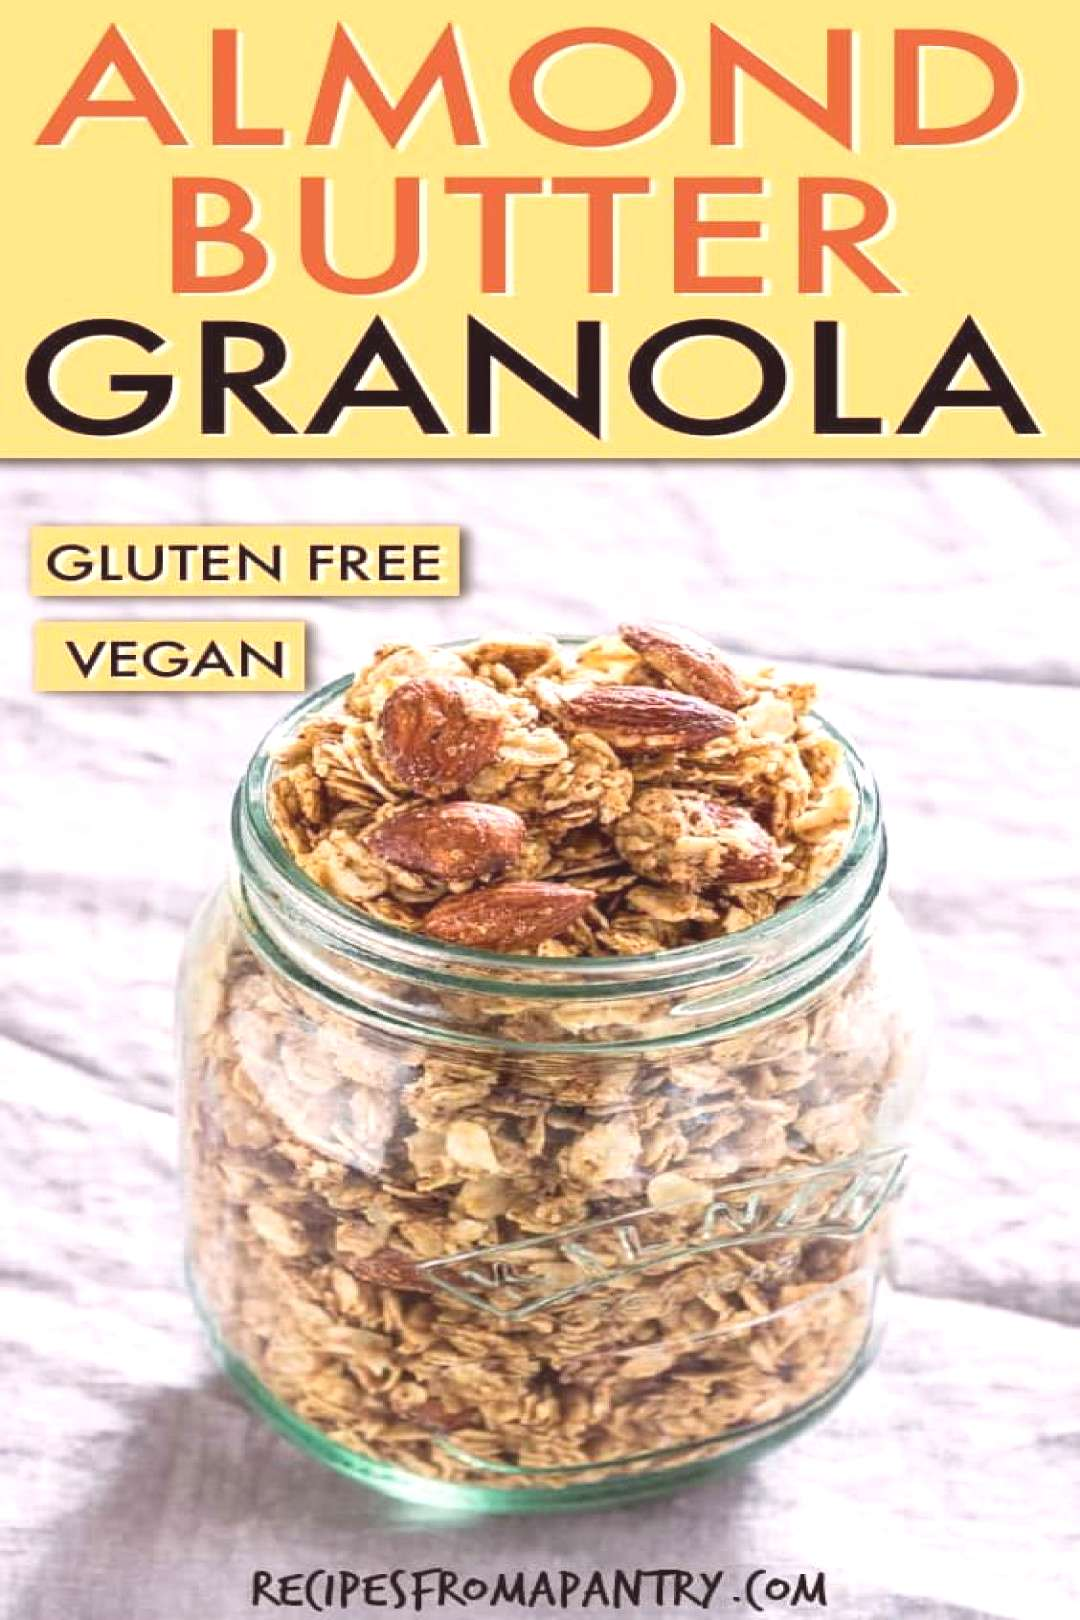 Almond Butter Granola You have found the best crunchy almond butter granola recipe ever. This refin